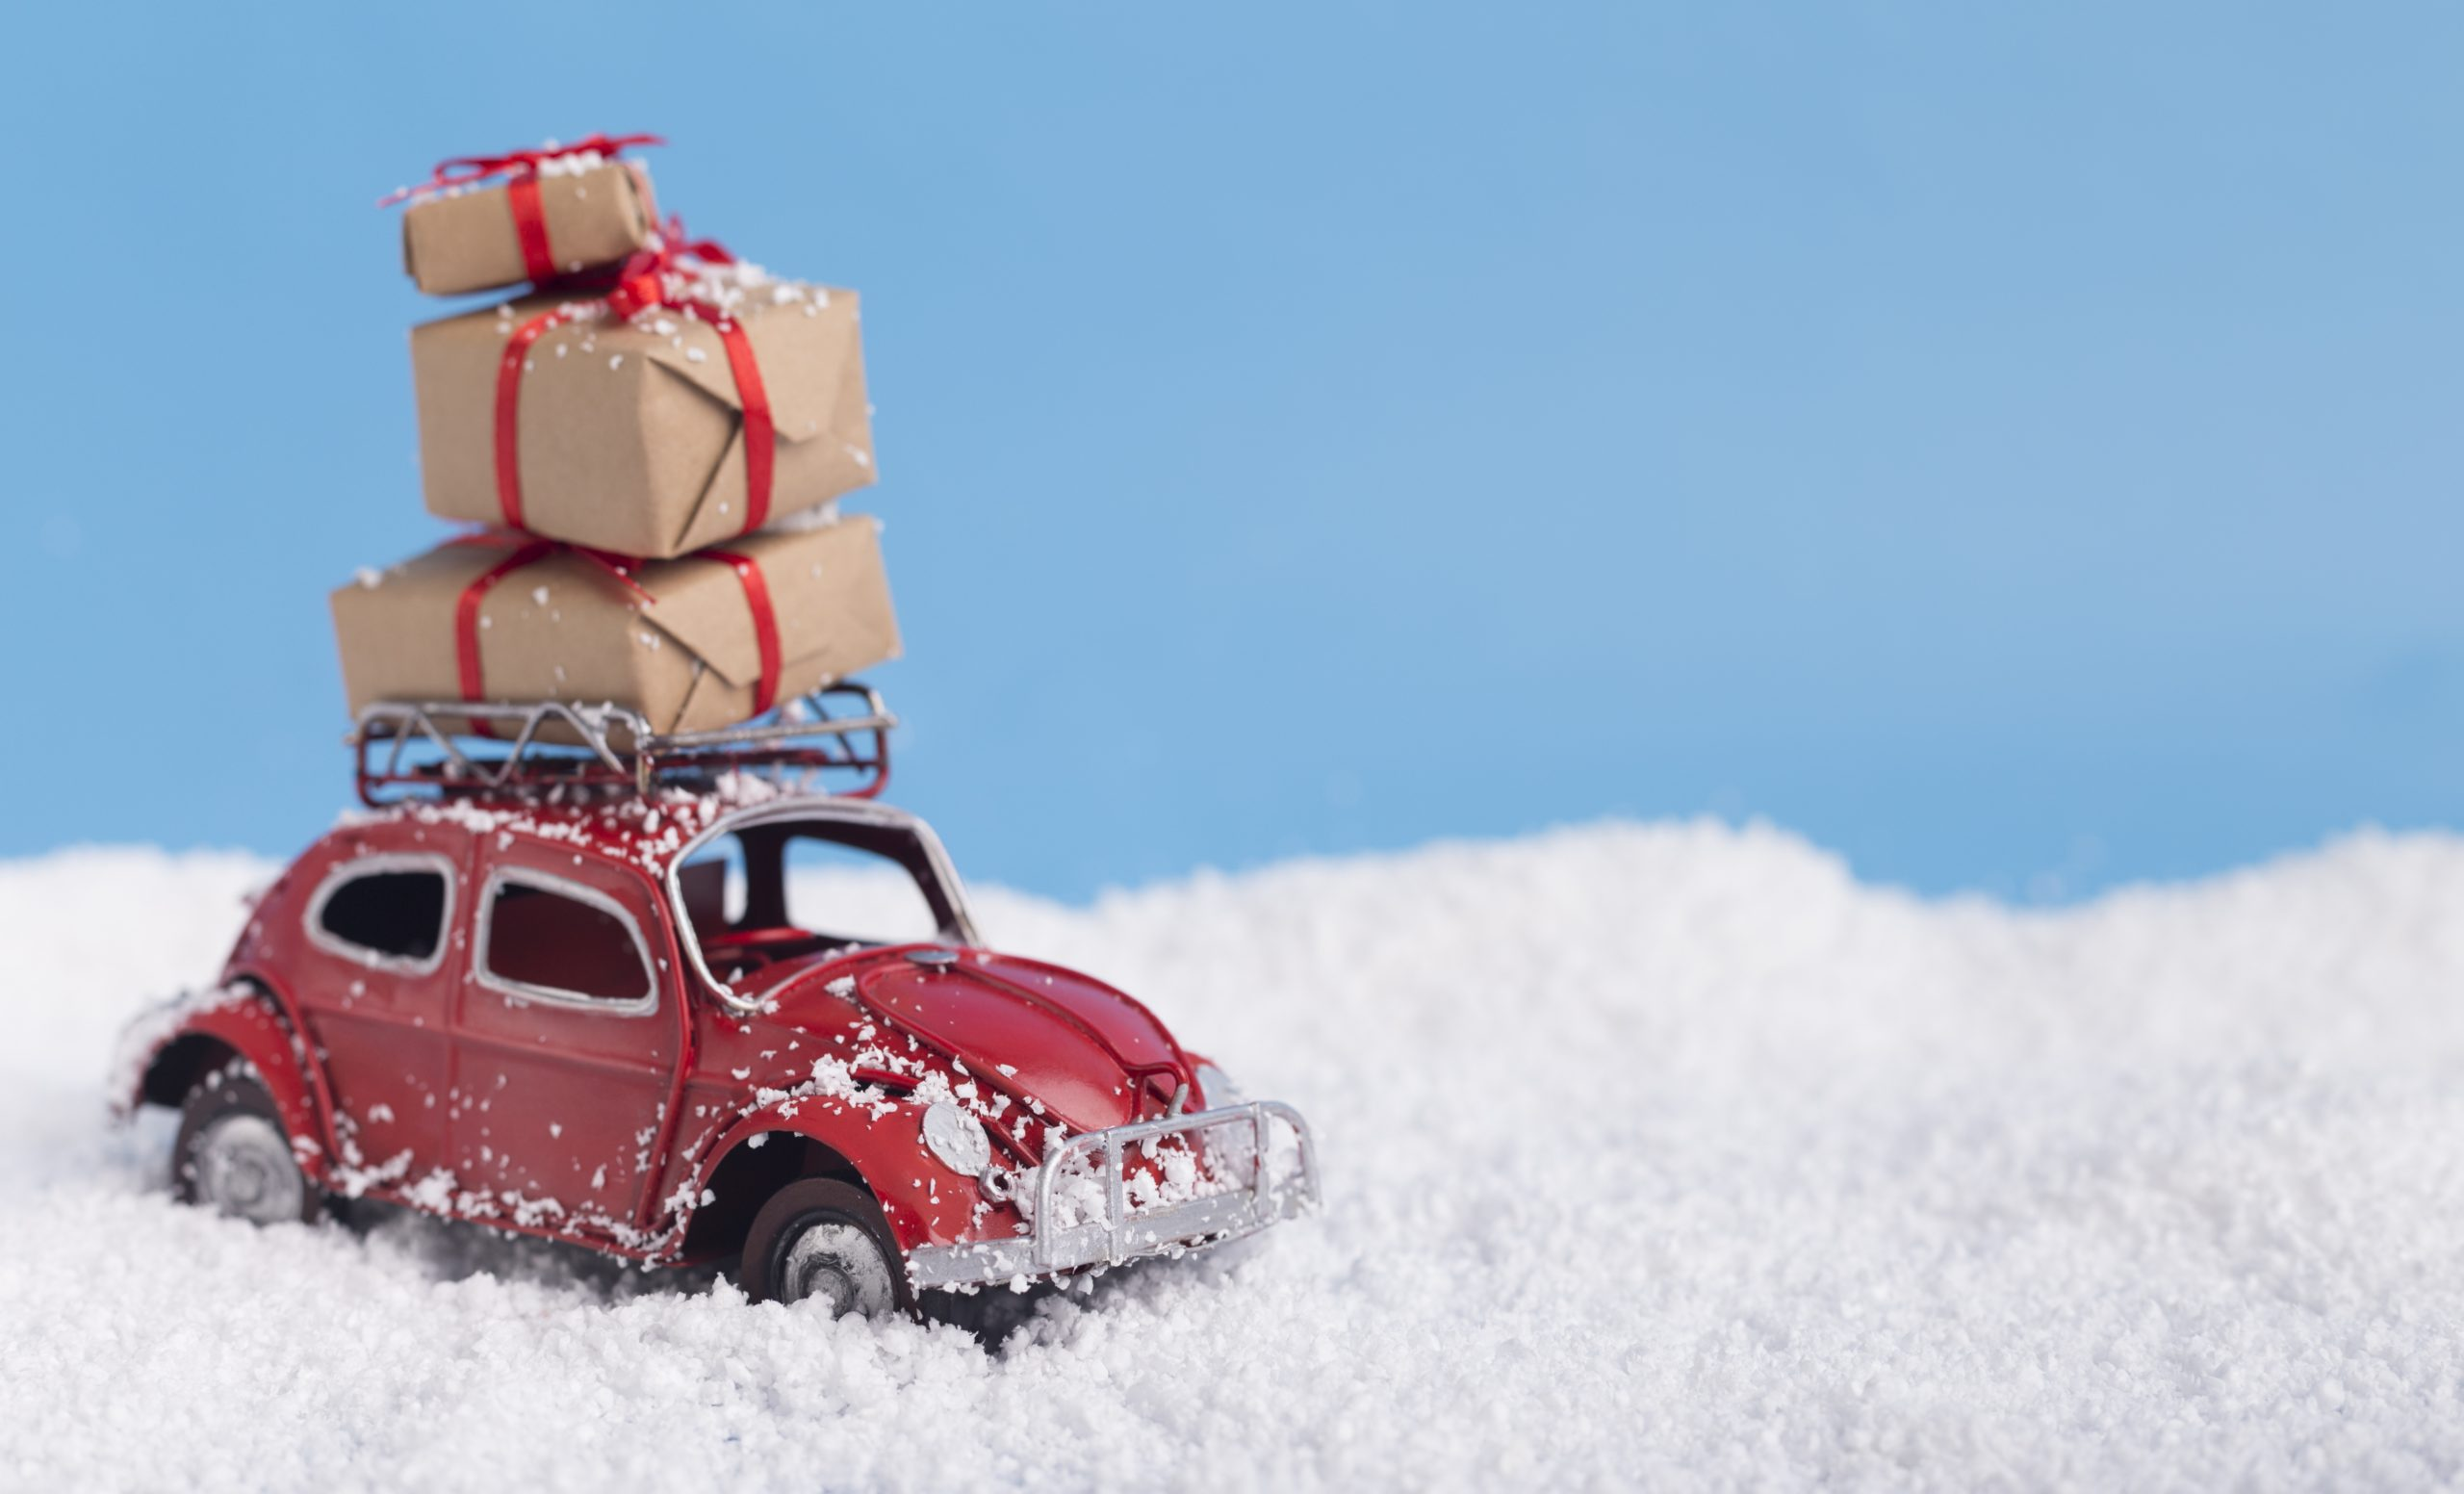 Red toy car with Christmas presents on background